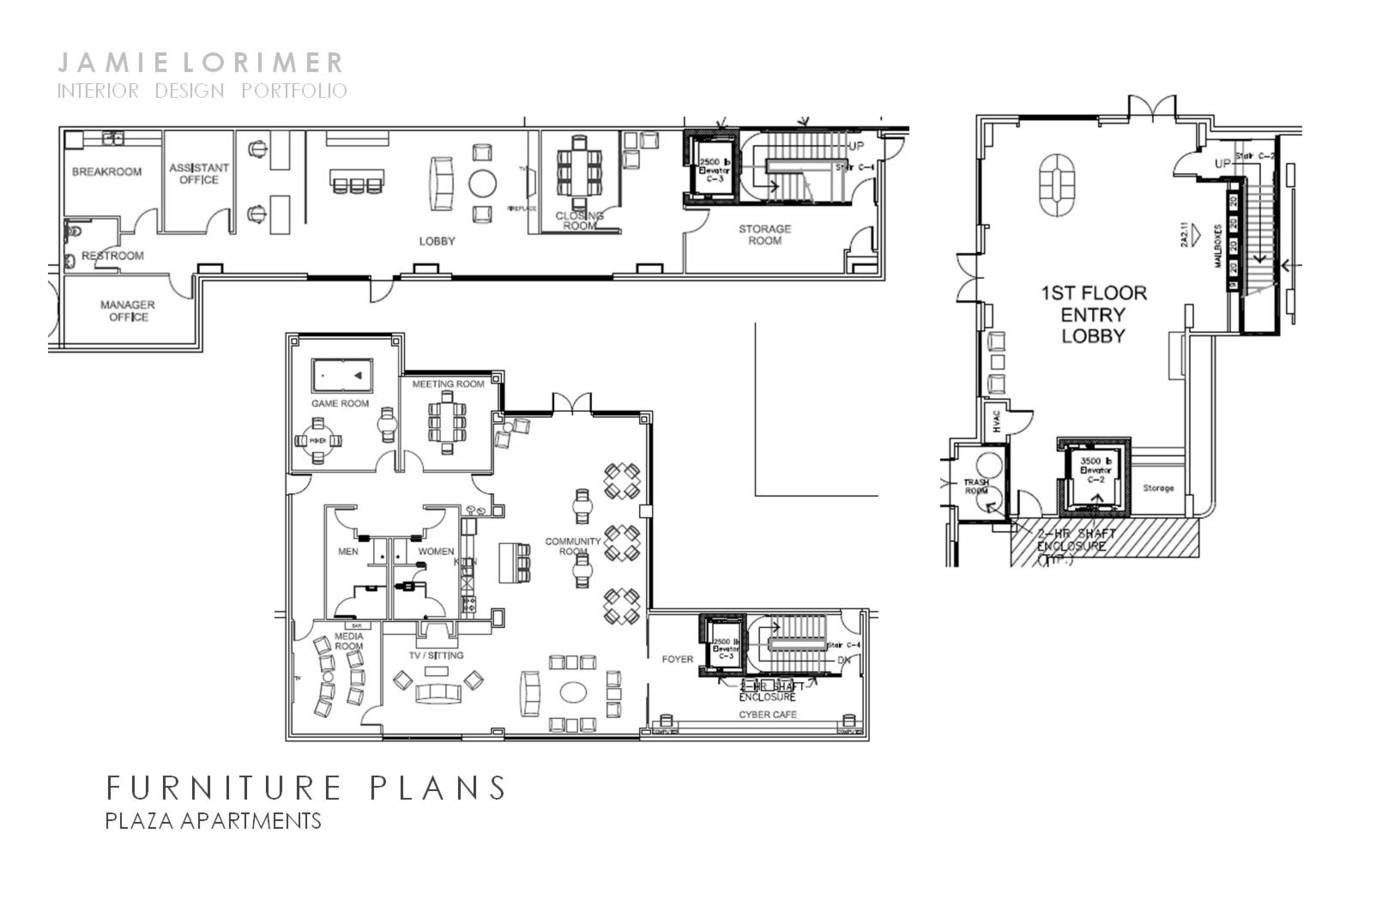 Luxury Apartment Complex: New Construction by Jamie